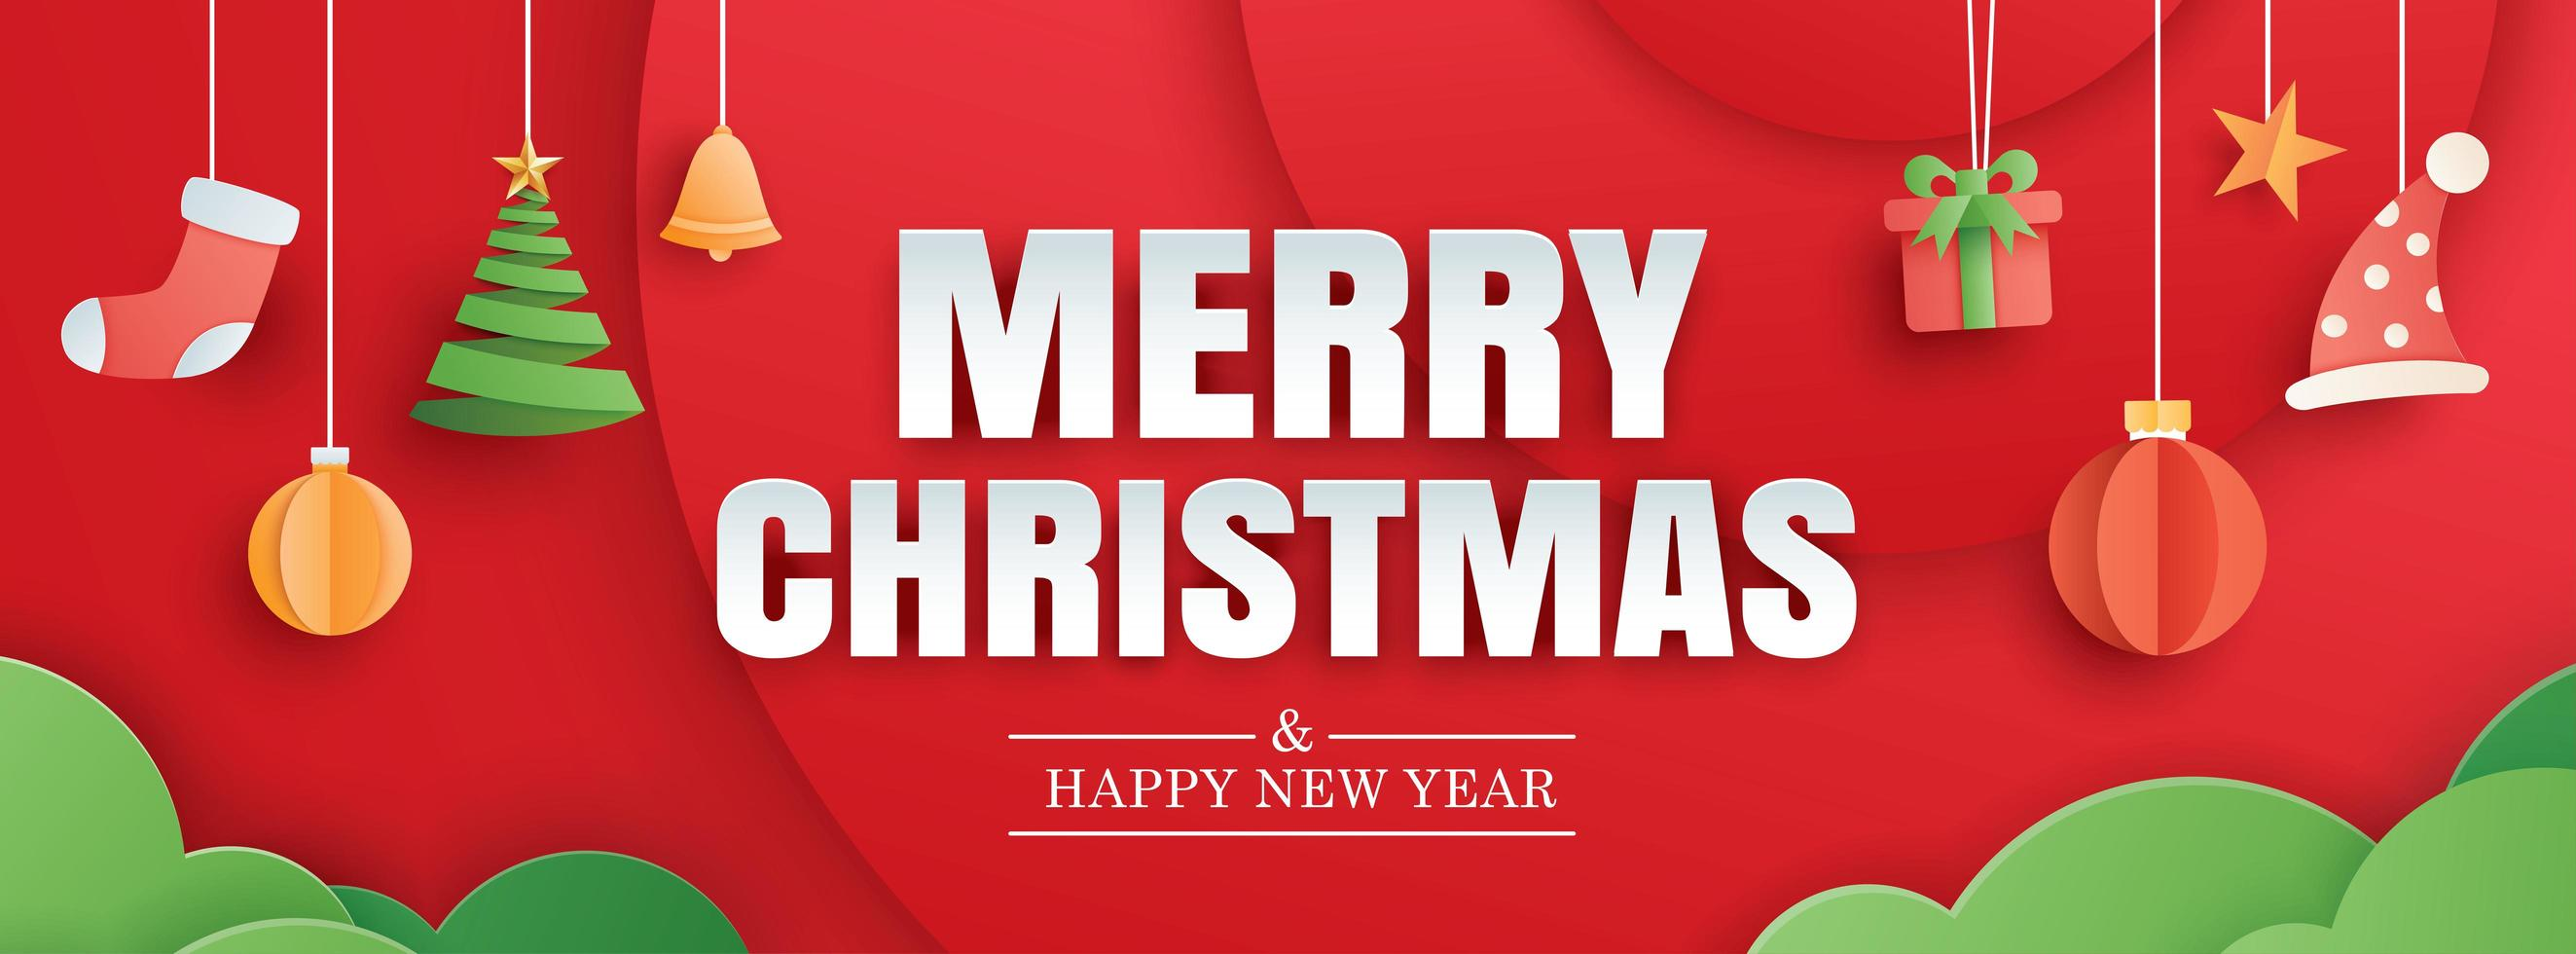 Merry christmas and happy new year red banner vector